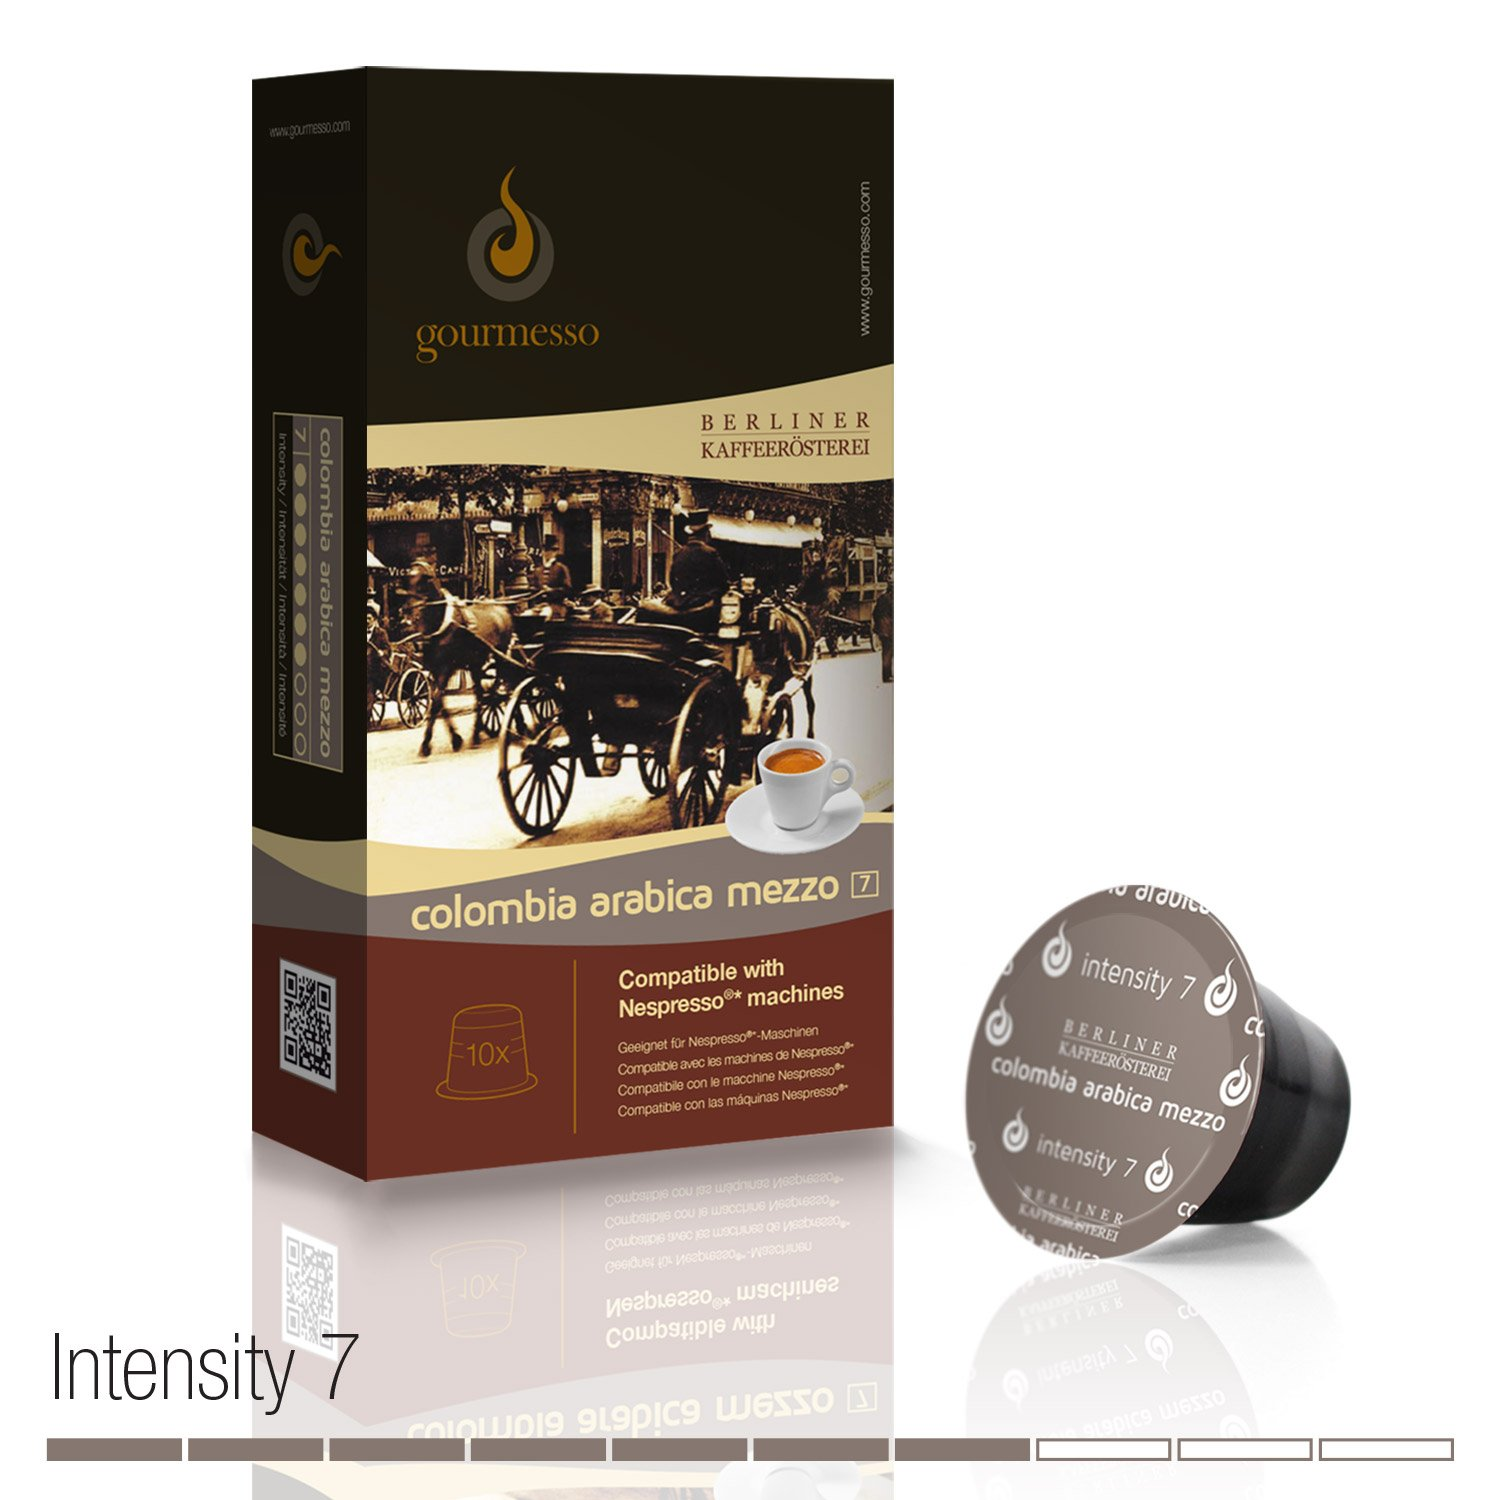 Amazon.com : Gourmesso Colombia Arabica Mezzo by Berlin Coffee Roasters - 30 Nespresso Compatible Coffee Capsules : Grocery & Gourmet Food